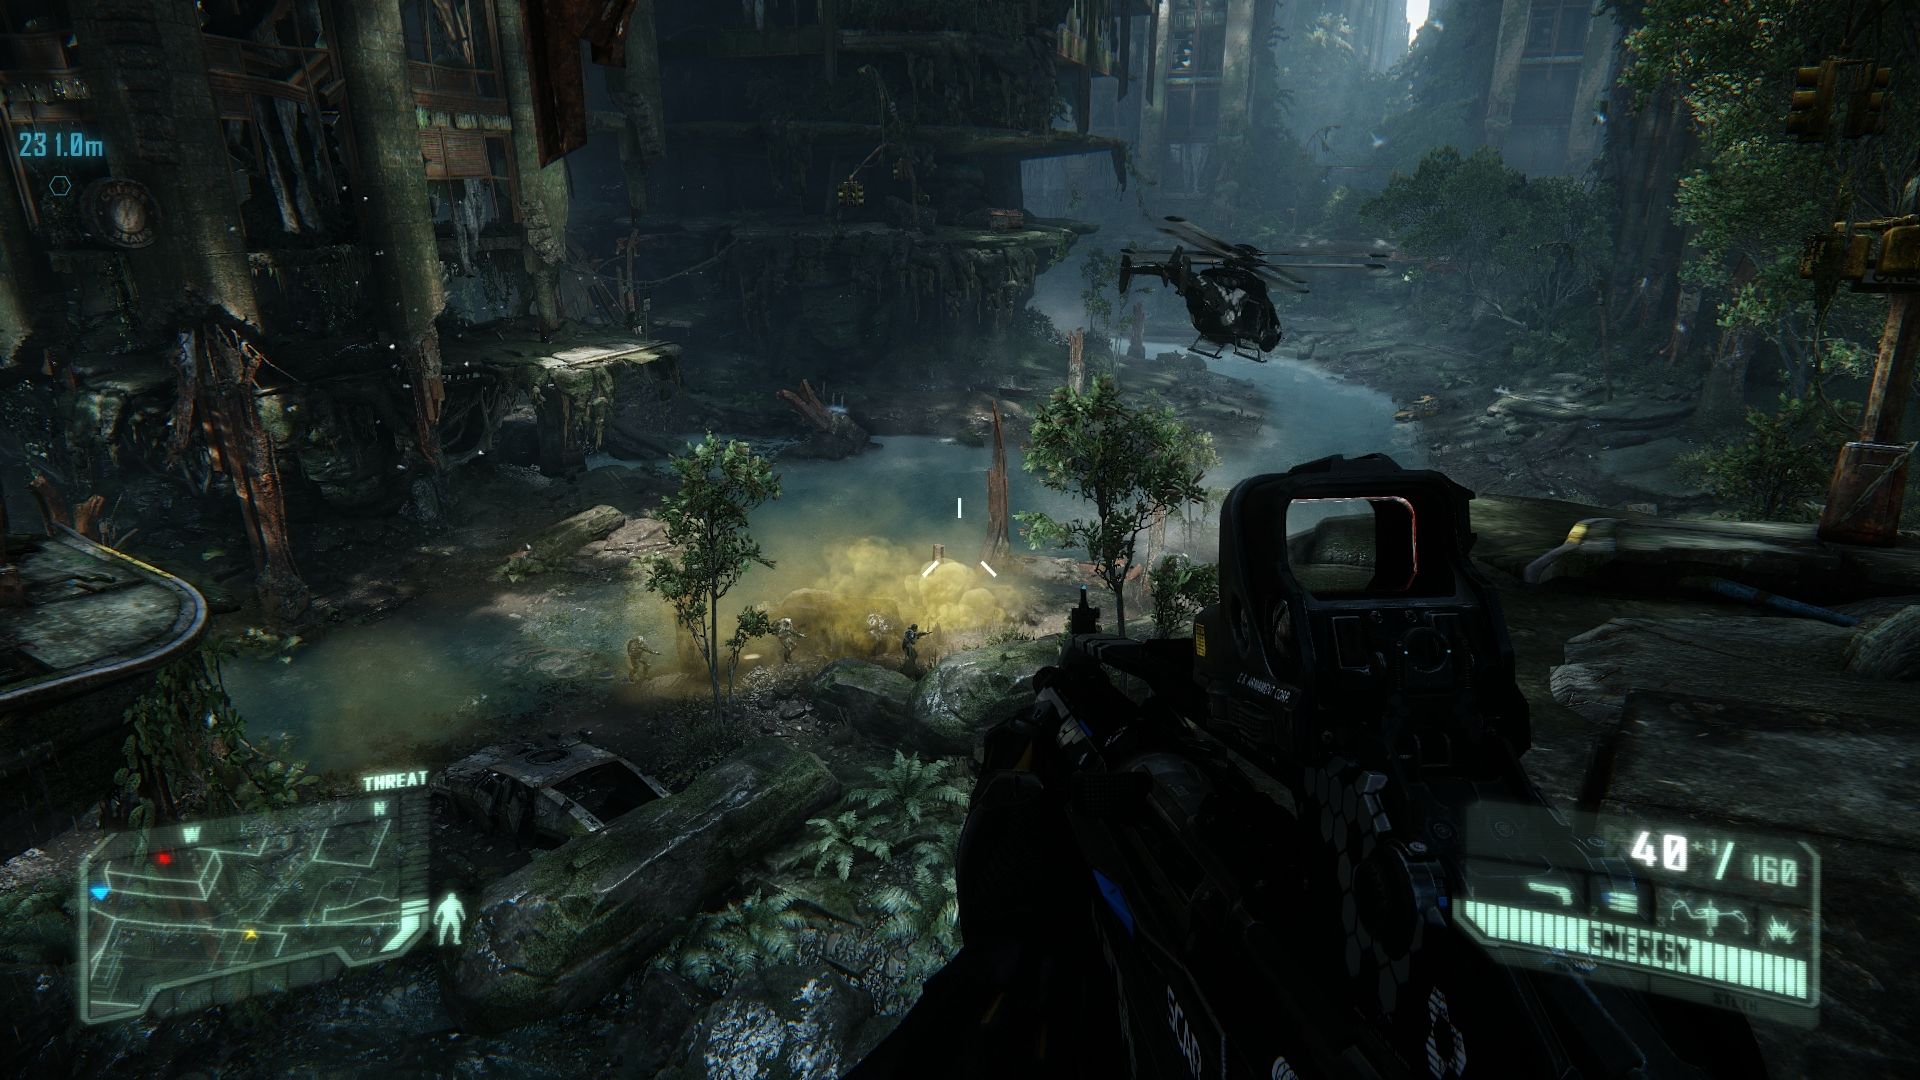 Crysis 3 graphics comparison pc maxed settings vs xbox 360 1080p - The Pc Version Running At 1080p And With The Graphical Sliders Ramped Up To The Higher Settings Produces A Gameplay Experience Far Removed From The